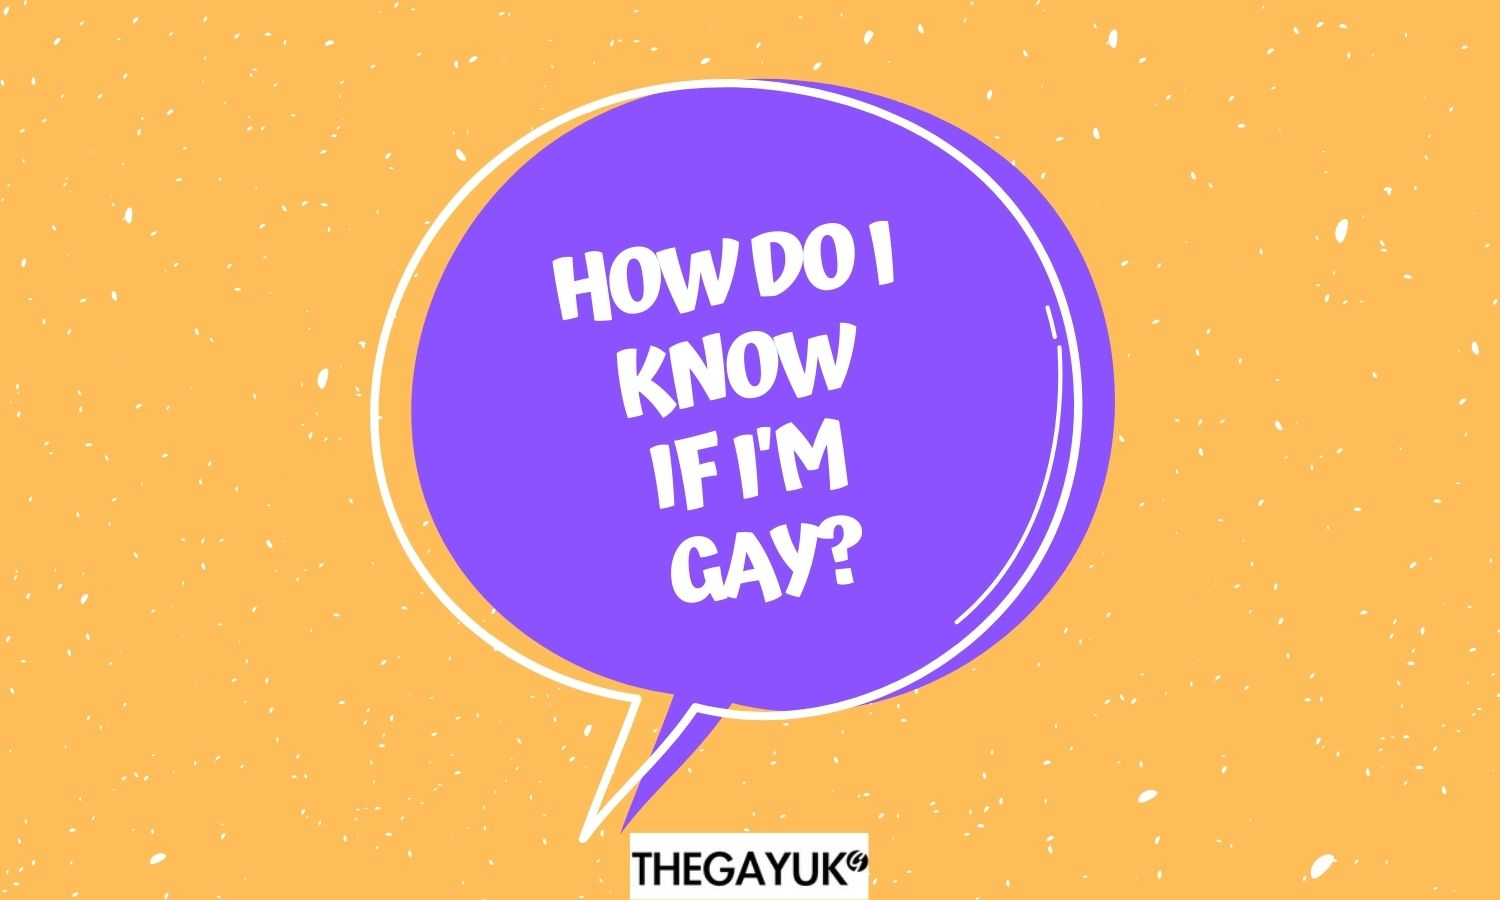 How do I know if I'm gay?